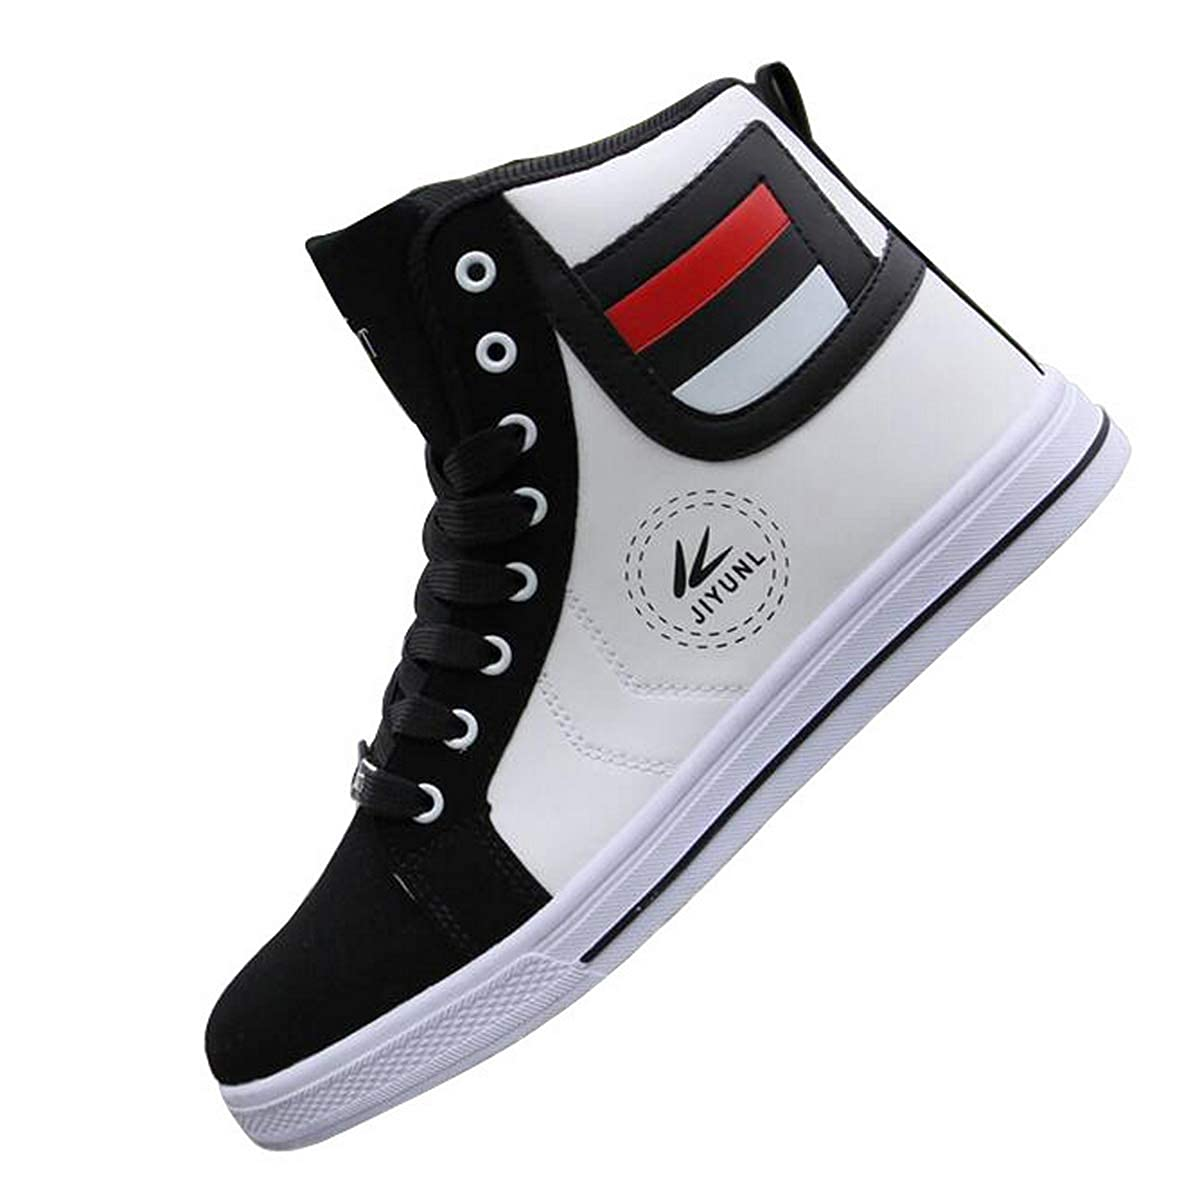 52a8b59f08b31 tazimall Mens Round Toe High Top Sneakers Casual Lace Up Skateboard Shoes  Newest Style(3 Colors)